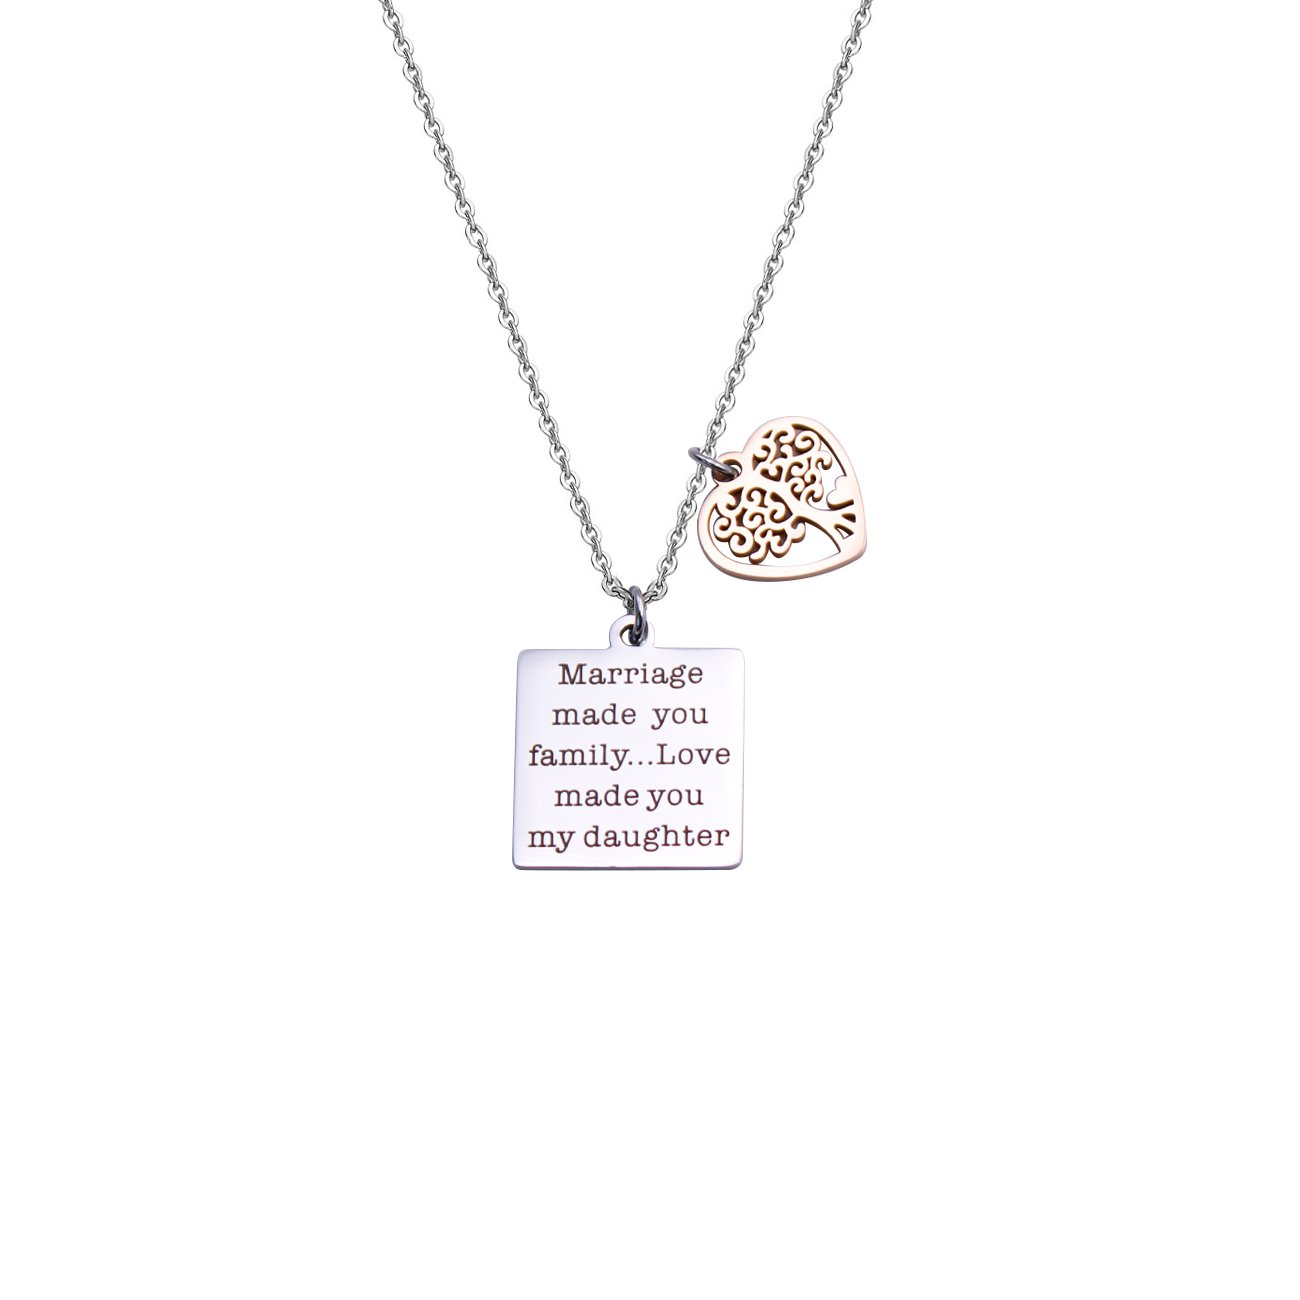 DYbaby Wedding Jewelry Gift-Marriage Made You My Family Love Made You My Daughter Pendant Necklace for Stepdaughter and Daughter in Law (Necklace)